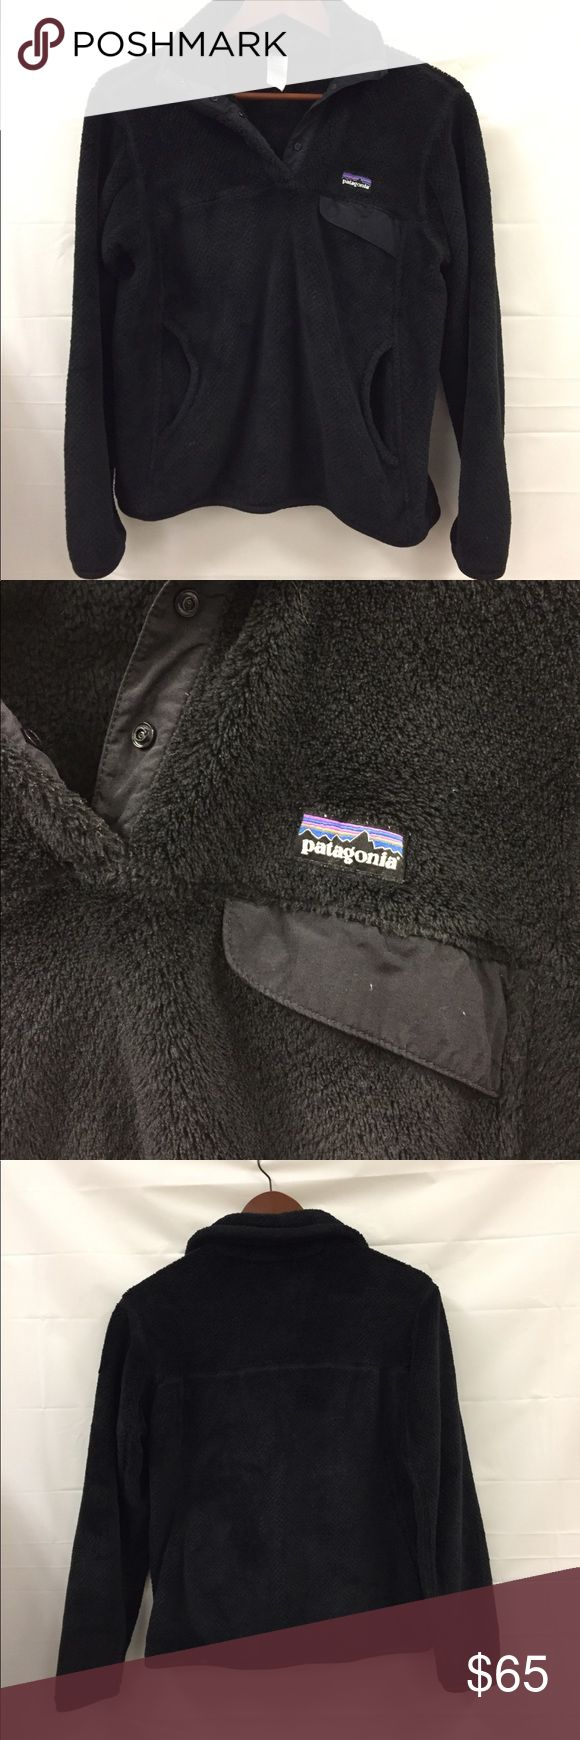 Patagonia Snap-T fleece pullover S Excellent condition, only worn a few times. No flaws. Women's small. Patagonia Sweaters